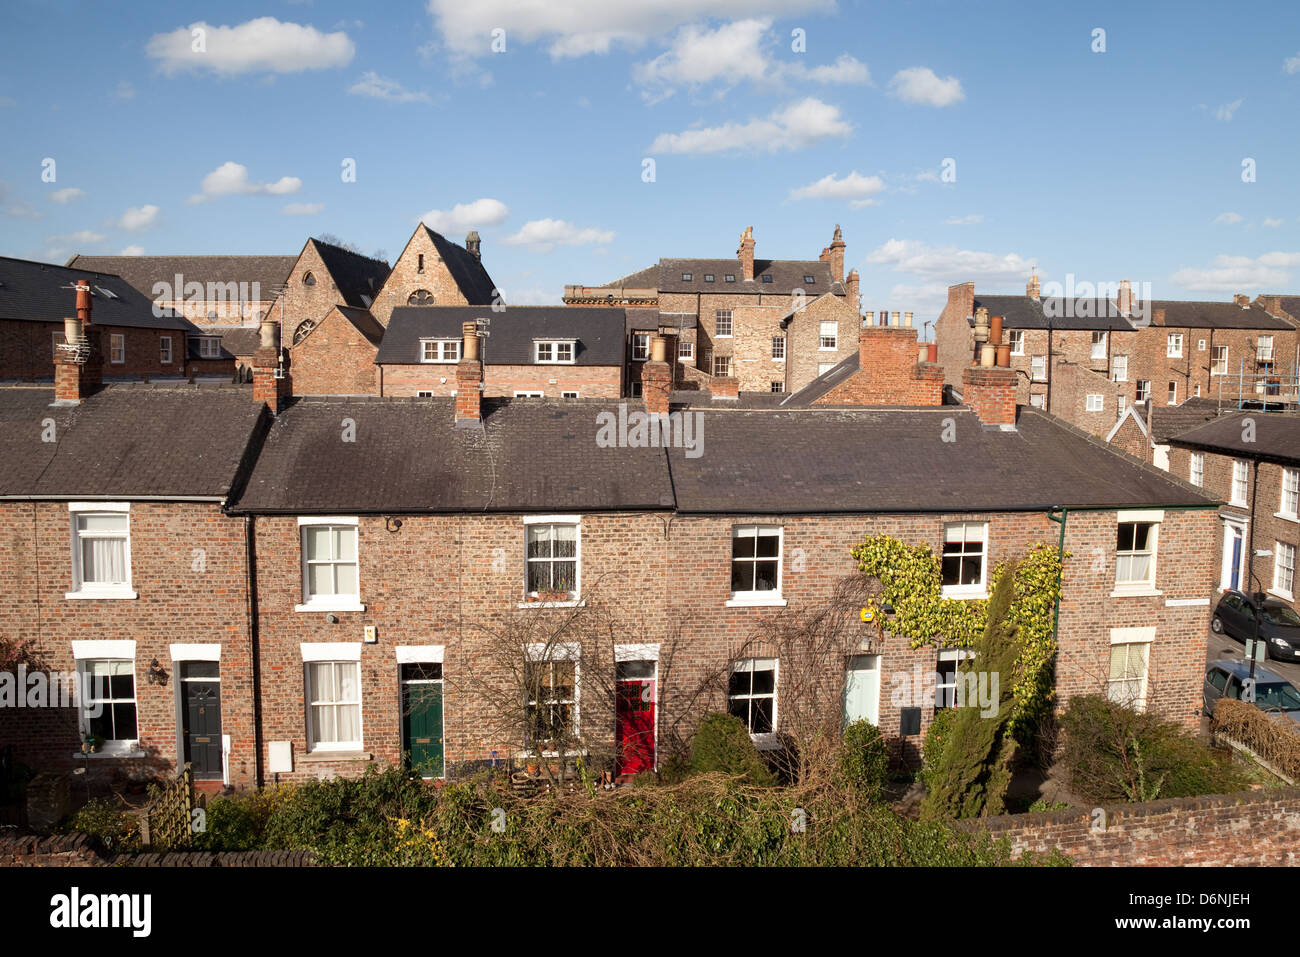 A row of terraced houses, Dewsbury Terrace, the City of York, Yorkshire, UK - Stock Image